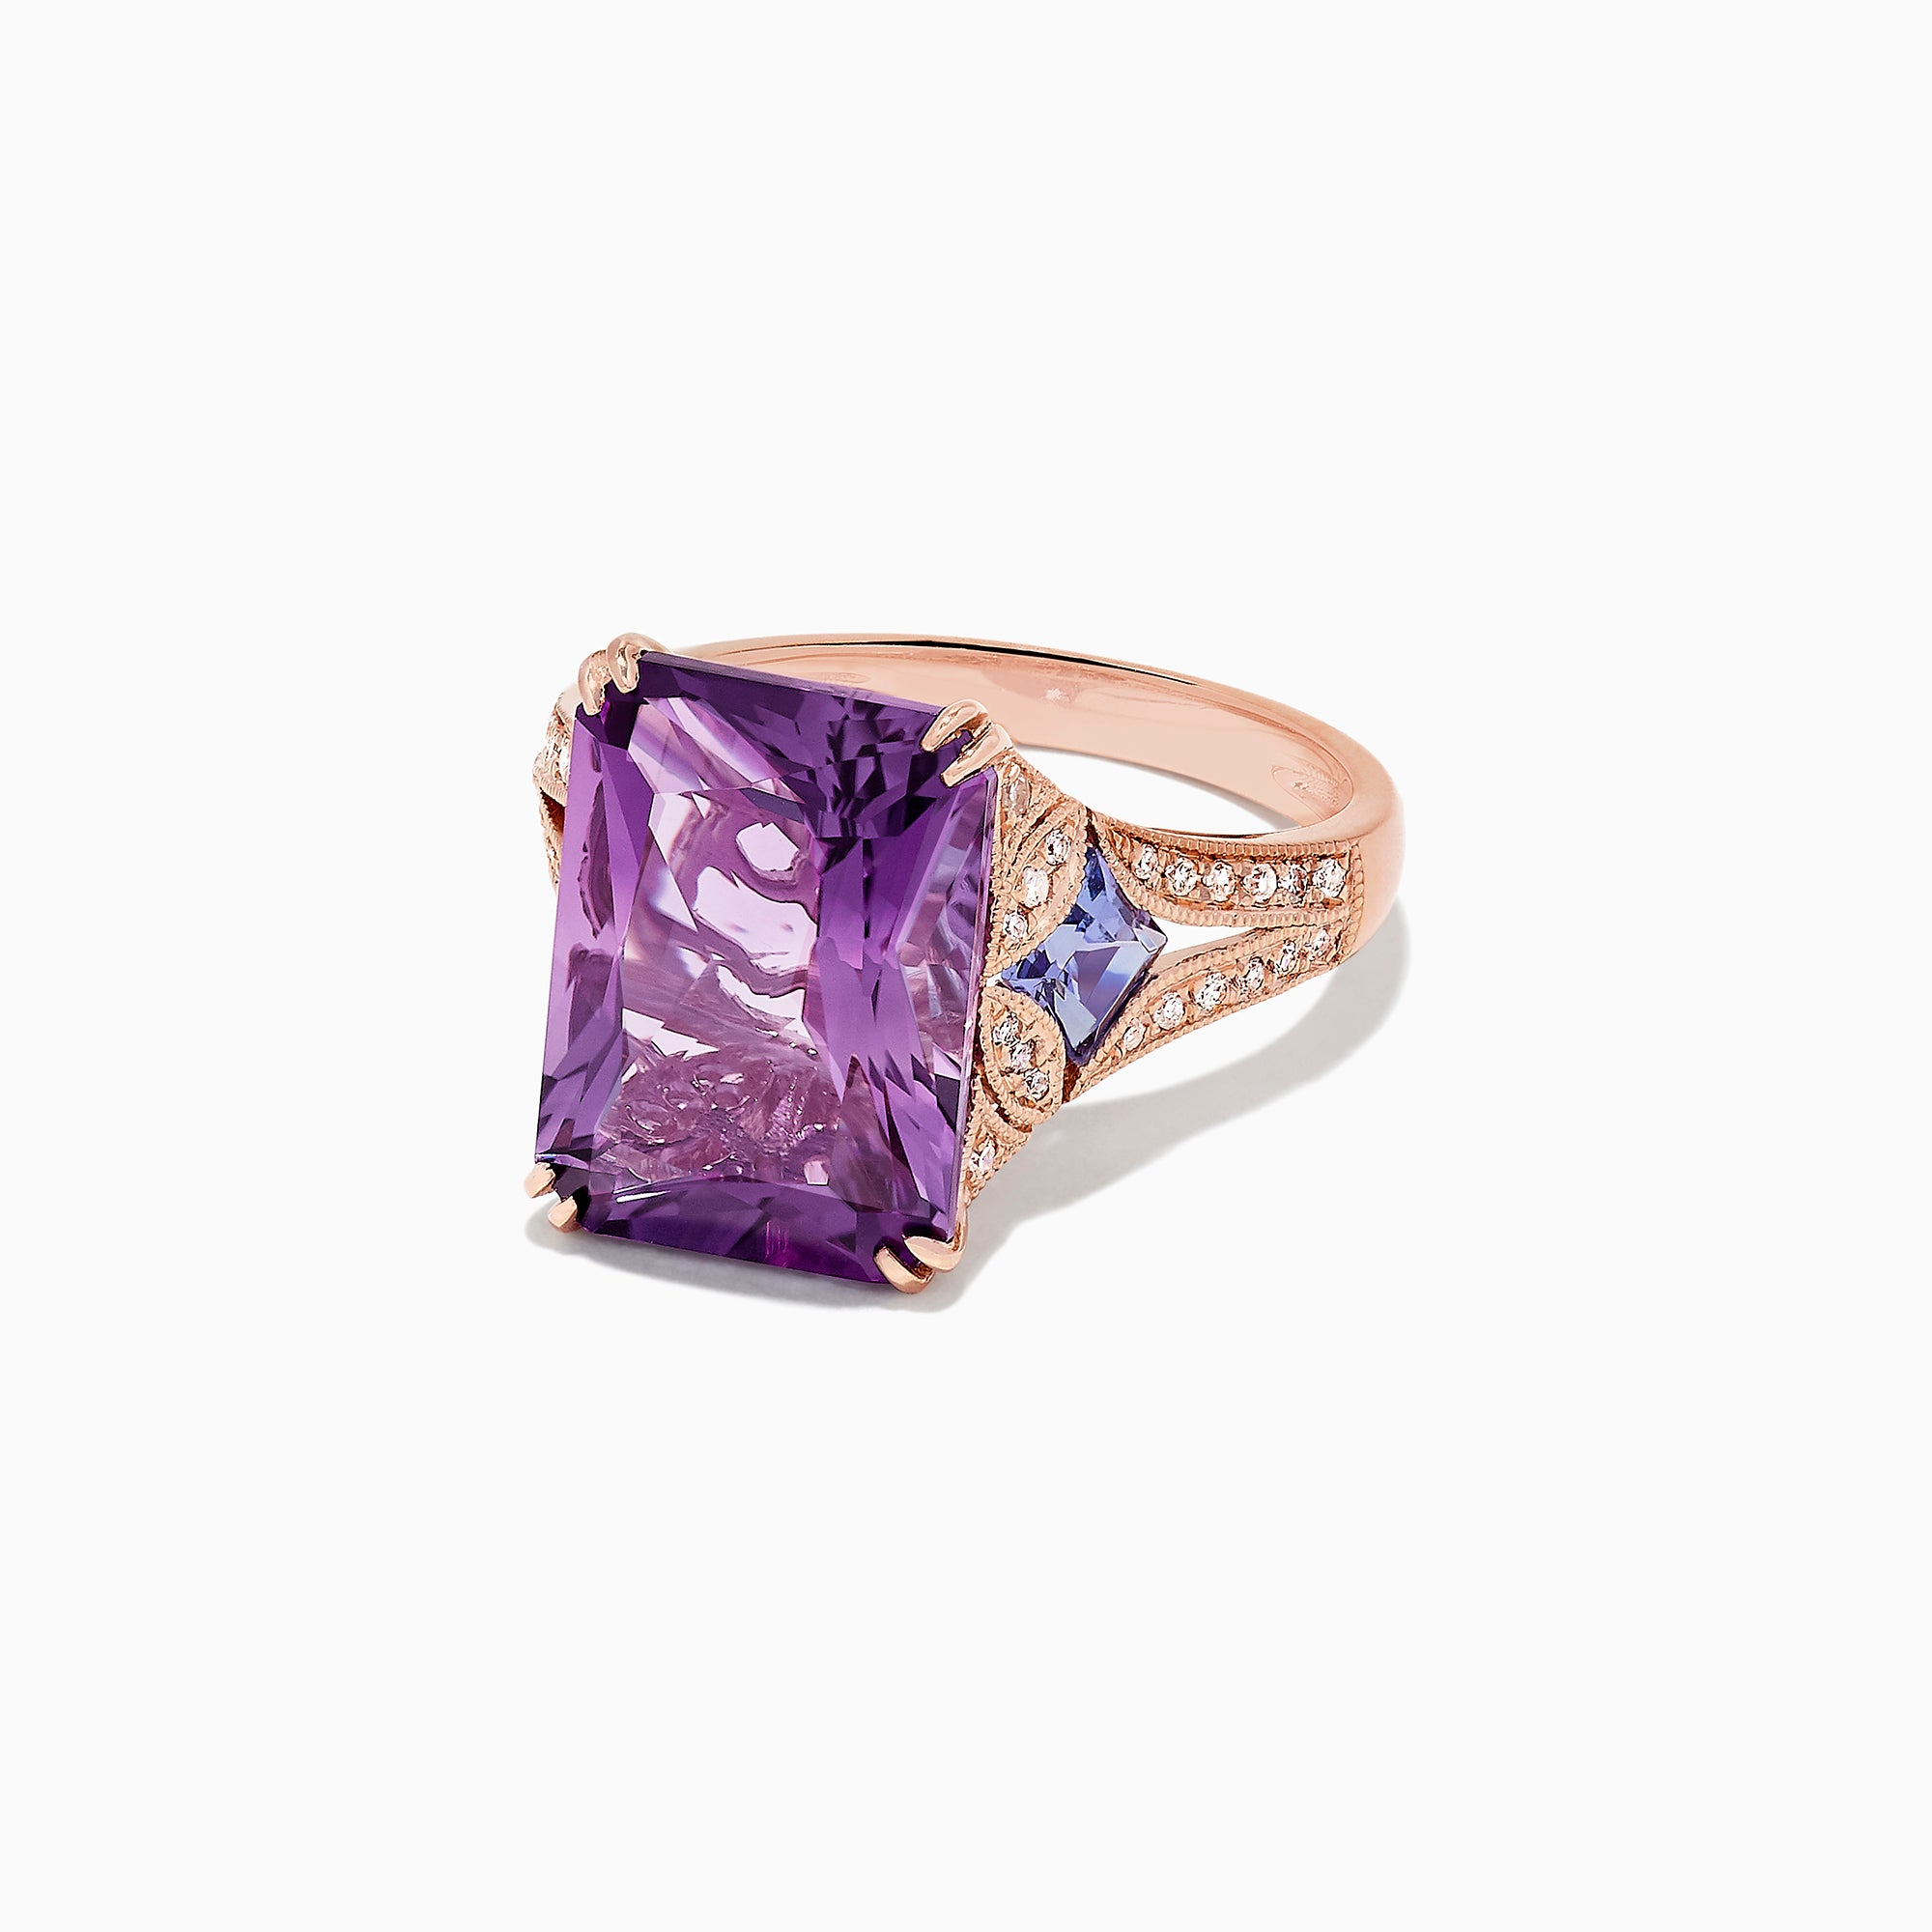 Effy 14K Rose Gold Amethyst, Tanzanite and Diamond Cocktail Ring, 7.60 TCW